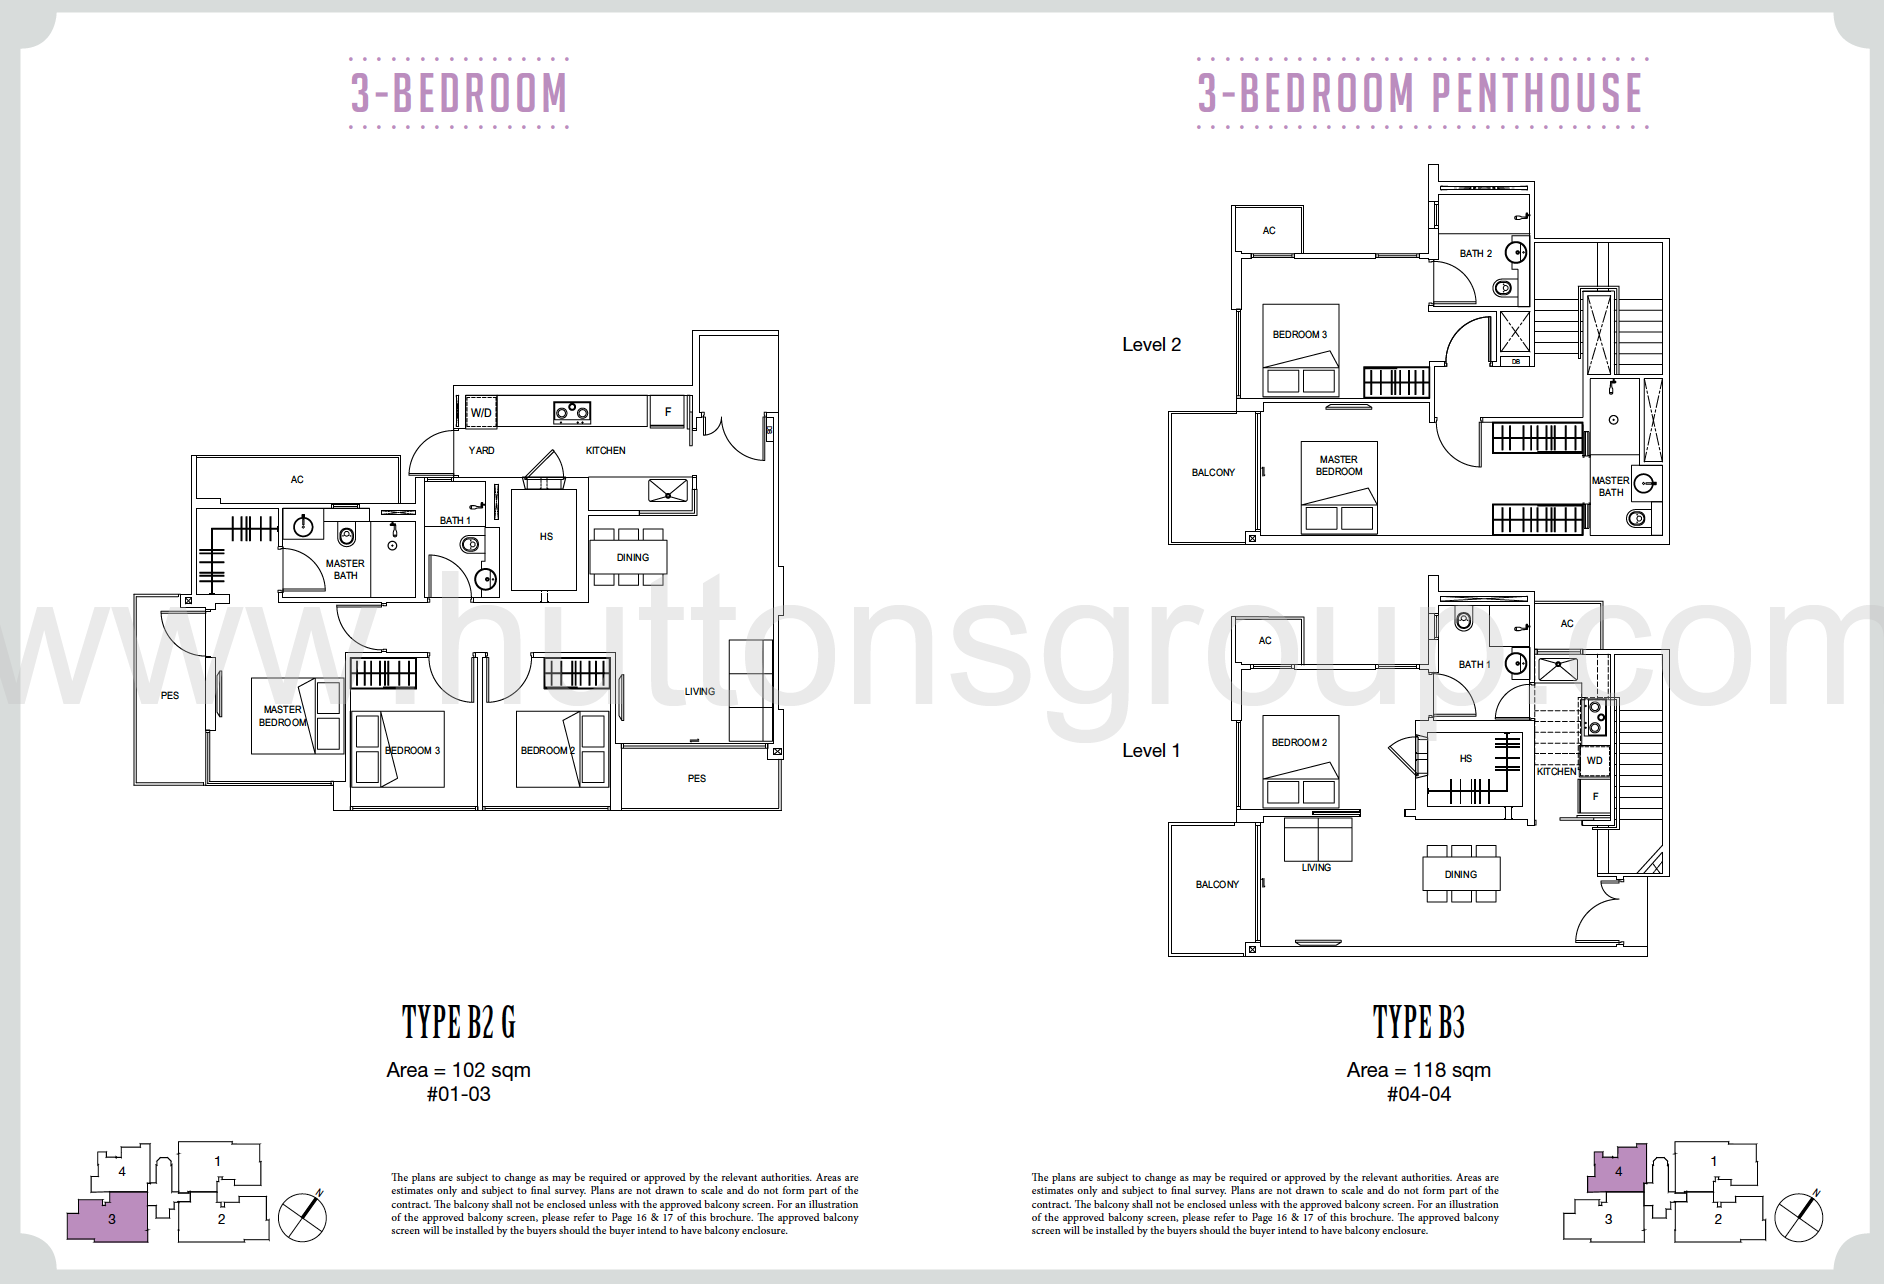 Carpmael 38 3 bedroom and penthouse floor plan